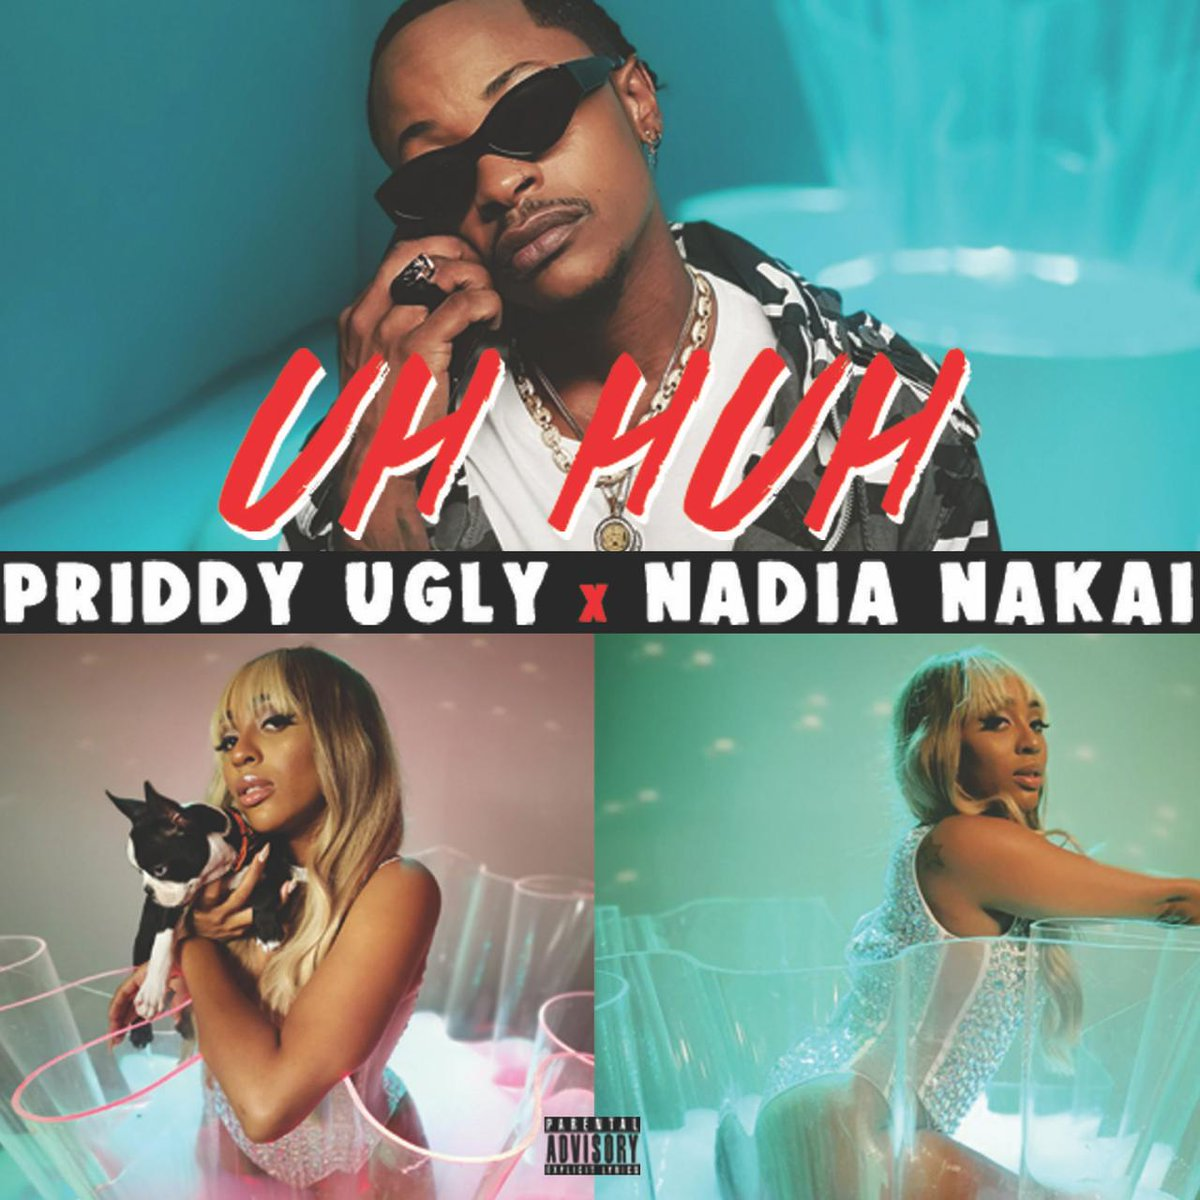 priddy ugly Peep Priddy Ugly x Nadia Nakai's New 'UH HUH' Music Video D3aO1PzXsAAuMnF 1